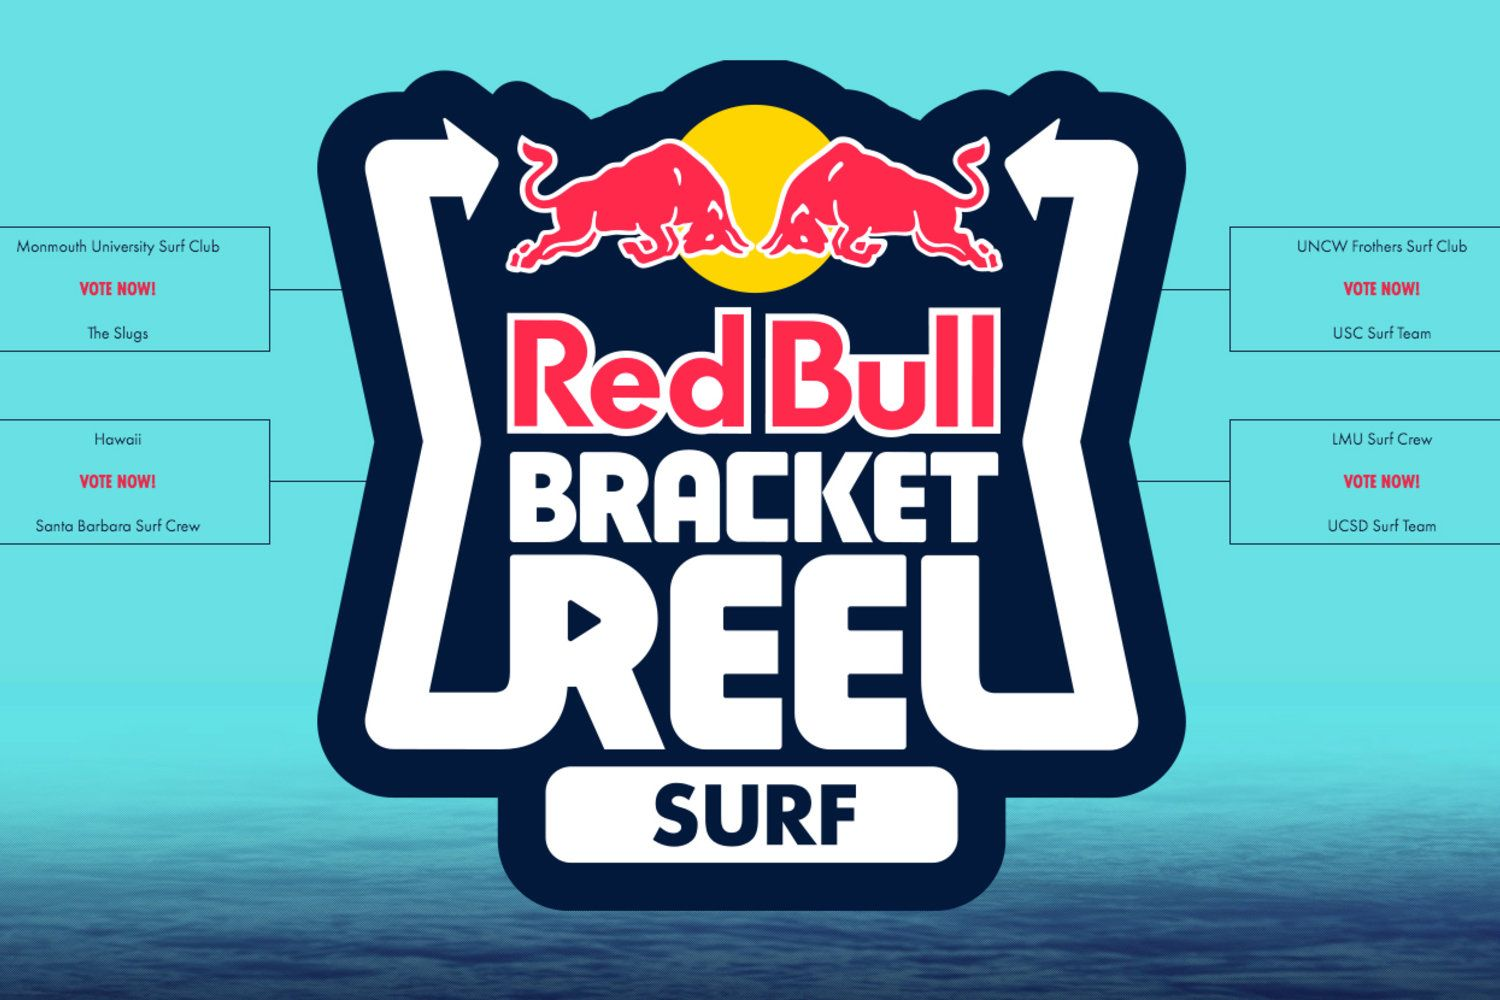 Though UNCW is smaller in comparison to its competitors, the UNCW Frothers Surf Club won the Red Bull Bracket Reel against 8 other colle